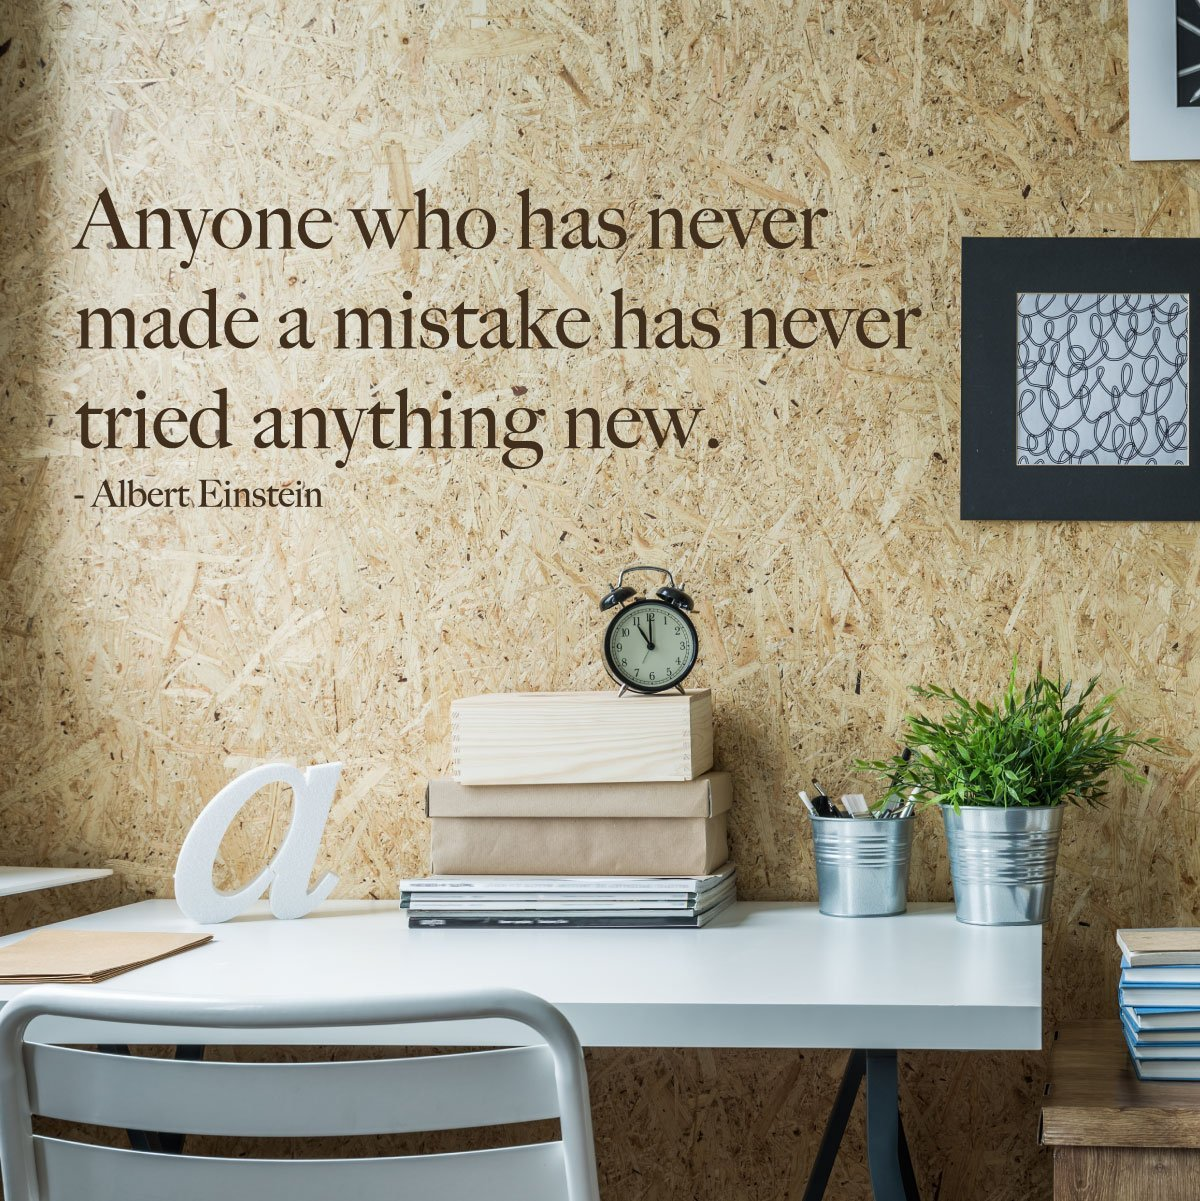 Albert Einstein Quote Vinyl Wall Decal Anyone Made Mistake Brown